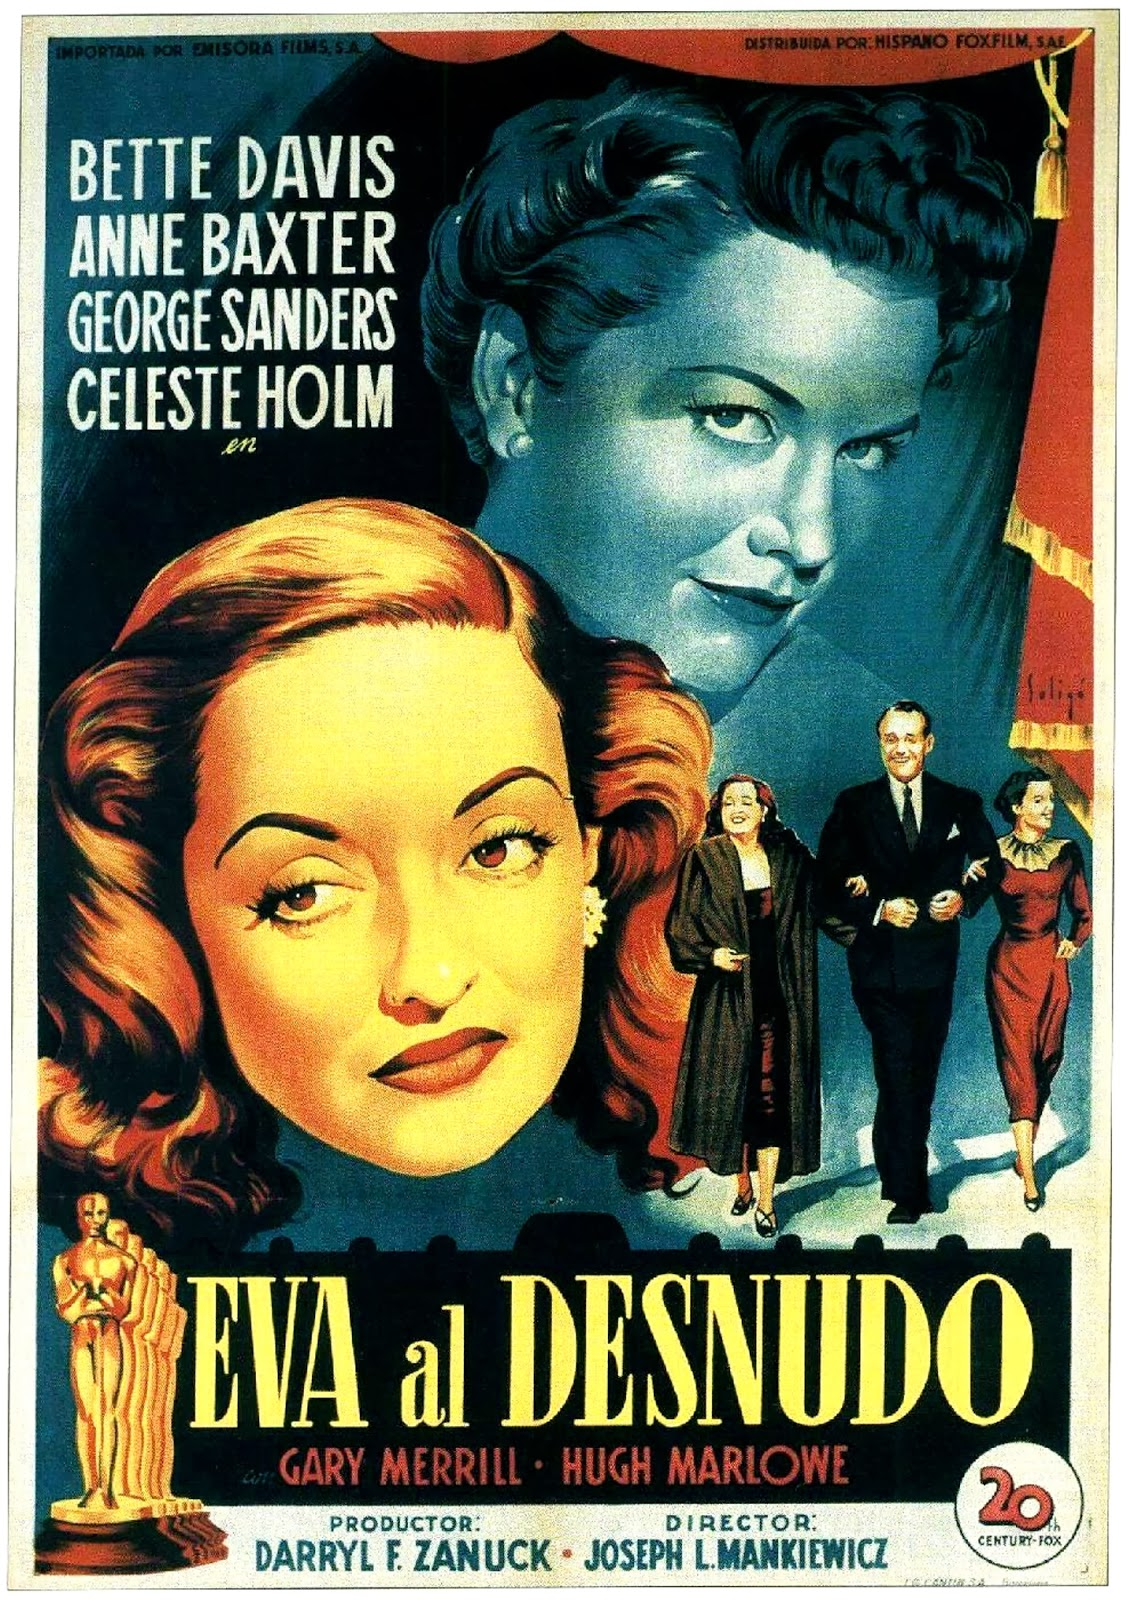 Eva al desnudo  /  All About Eve